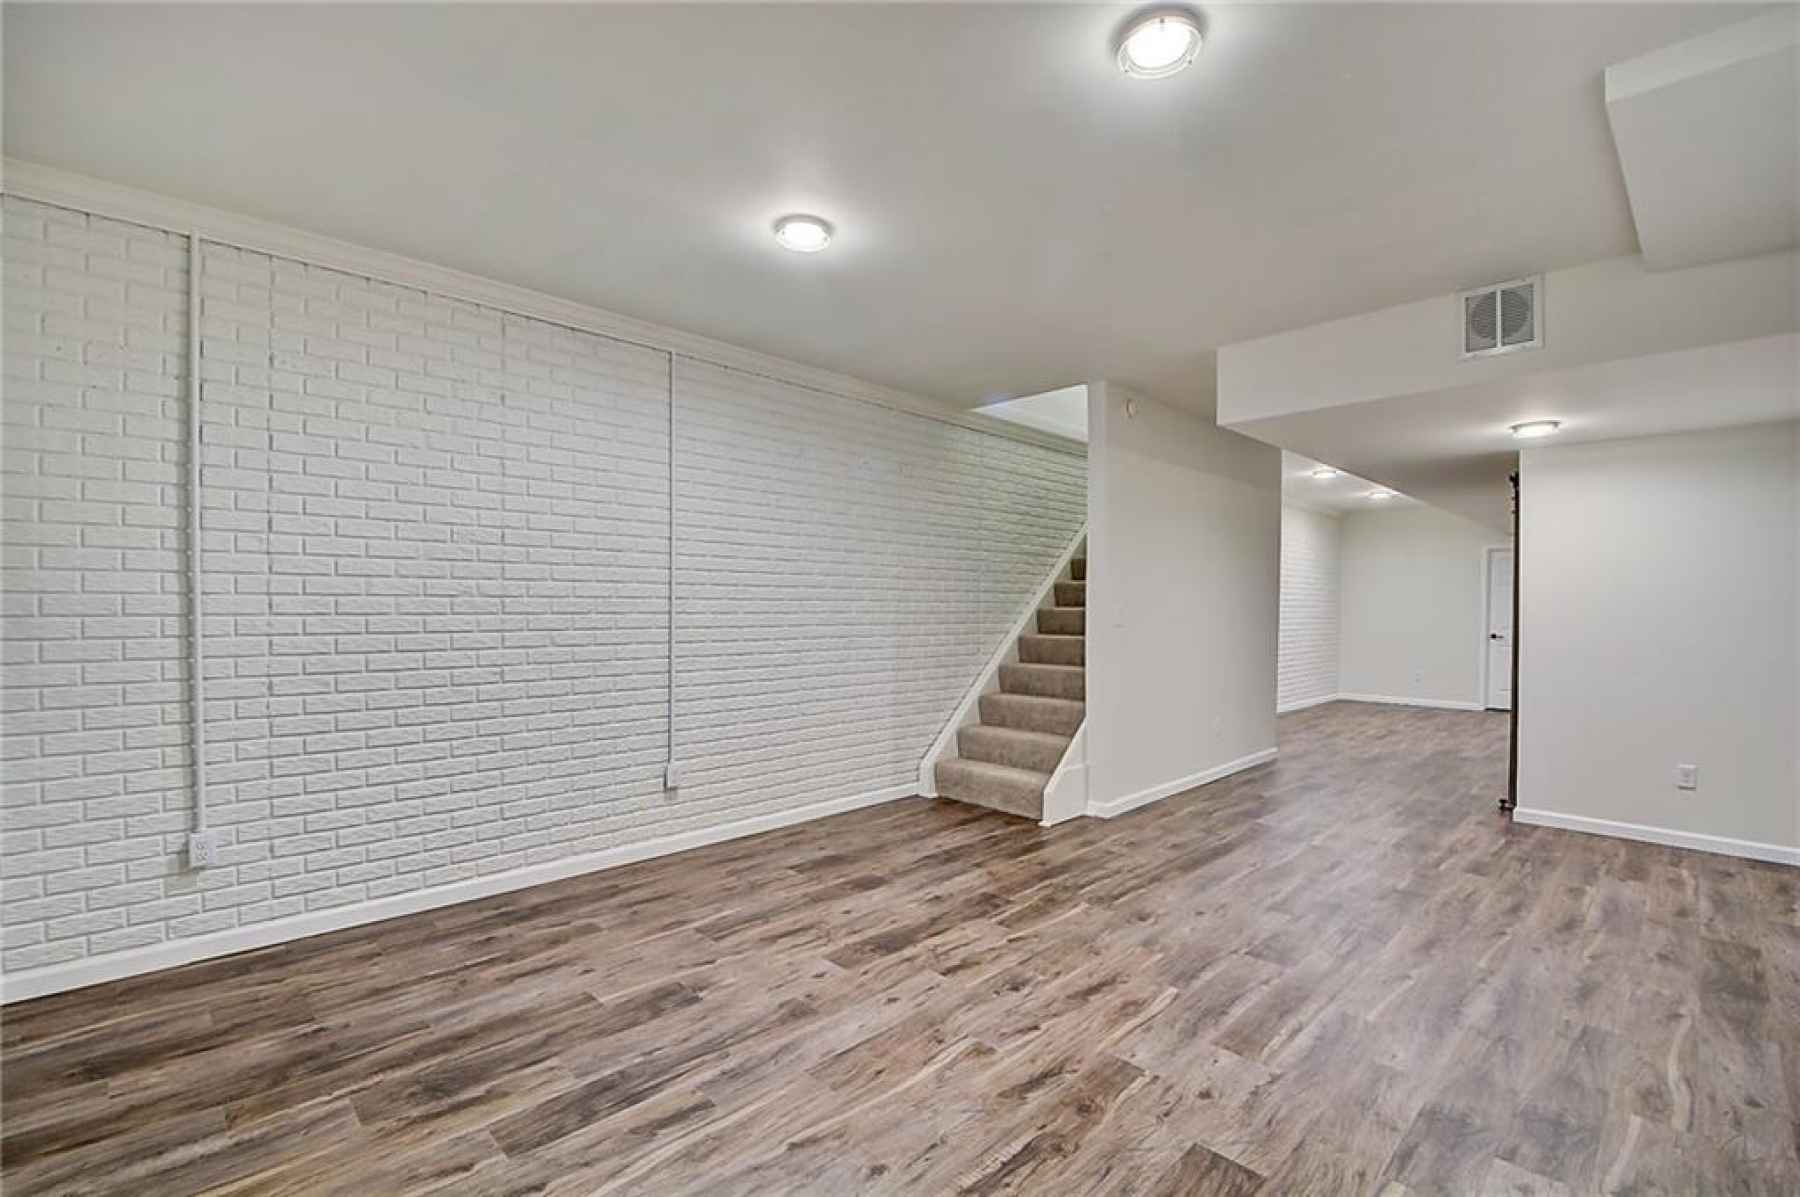 Finished basement with vinyl plank flooring